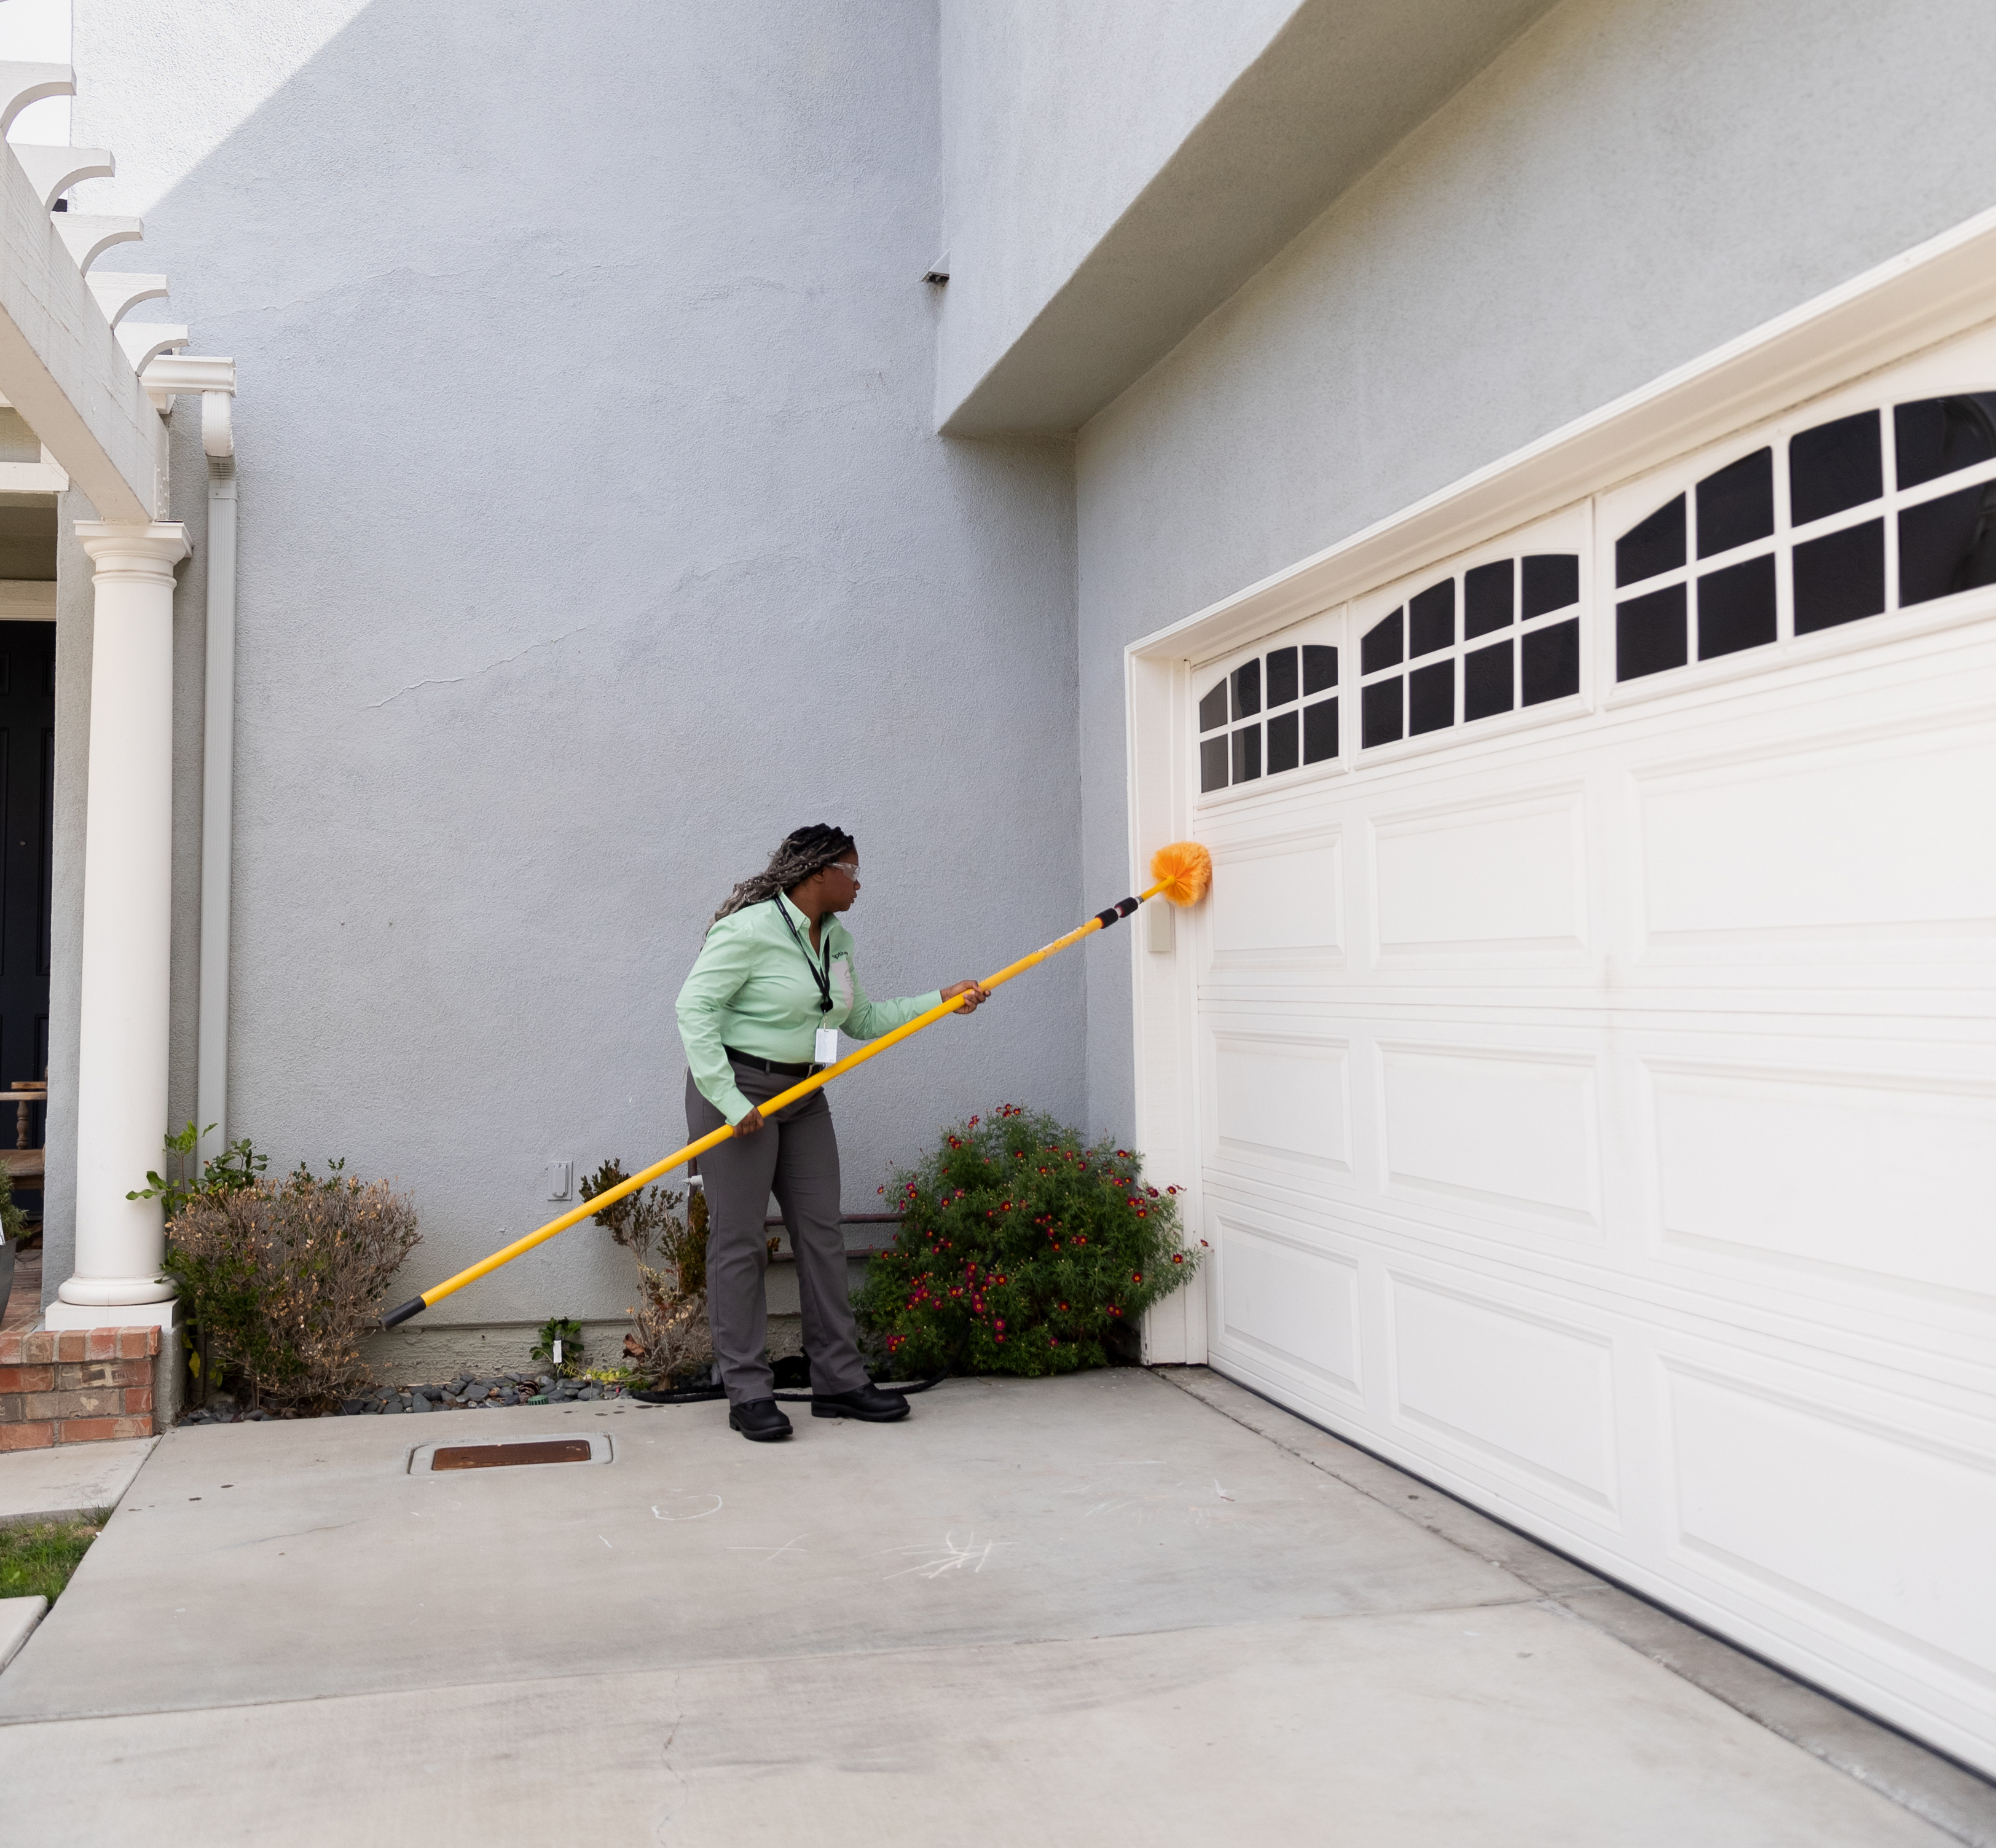 A pest control specialist wearing a green shirt and grey pants uses a yellow pest control wand to clean a white garage door on the exterior of a grey house.